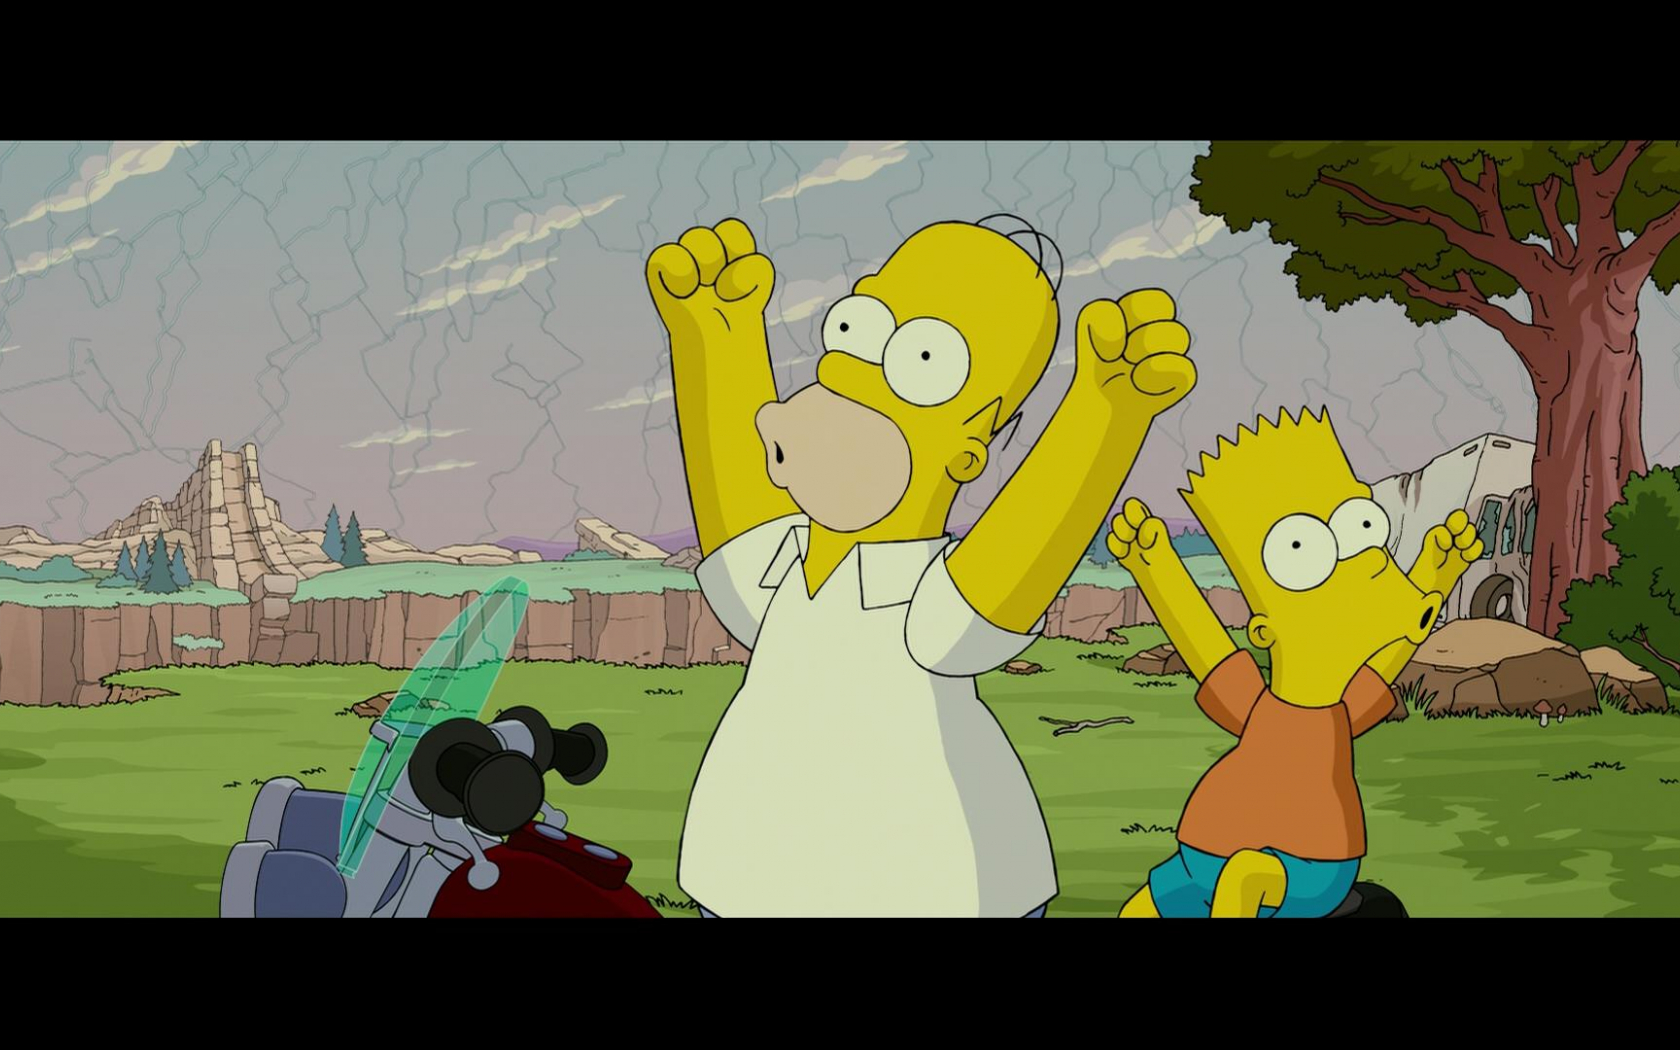 Free Download The Simpsons Movie Wallpapers Hd Download 1920x1080 For Your Desktop Mobile Tablet Explore 73 The Simpsons Movie Wallpaper Homer Simpson Wallpaper